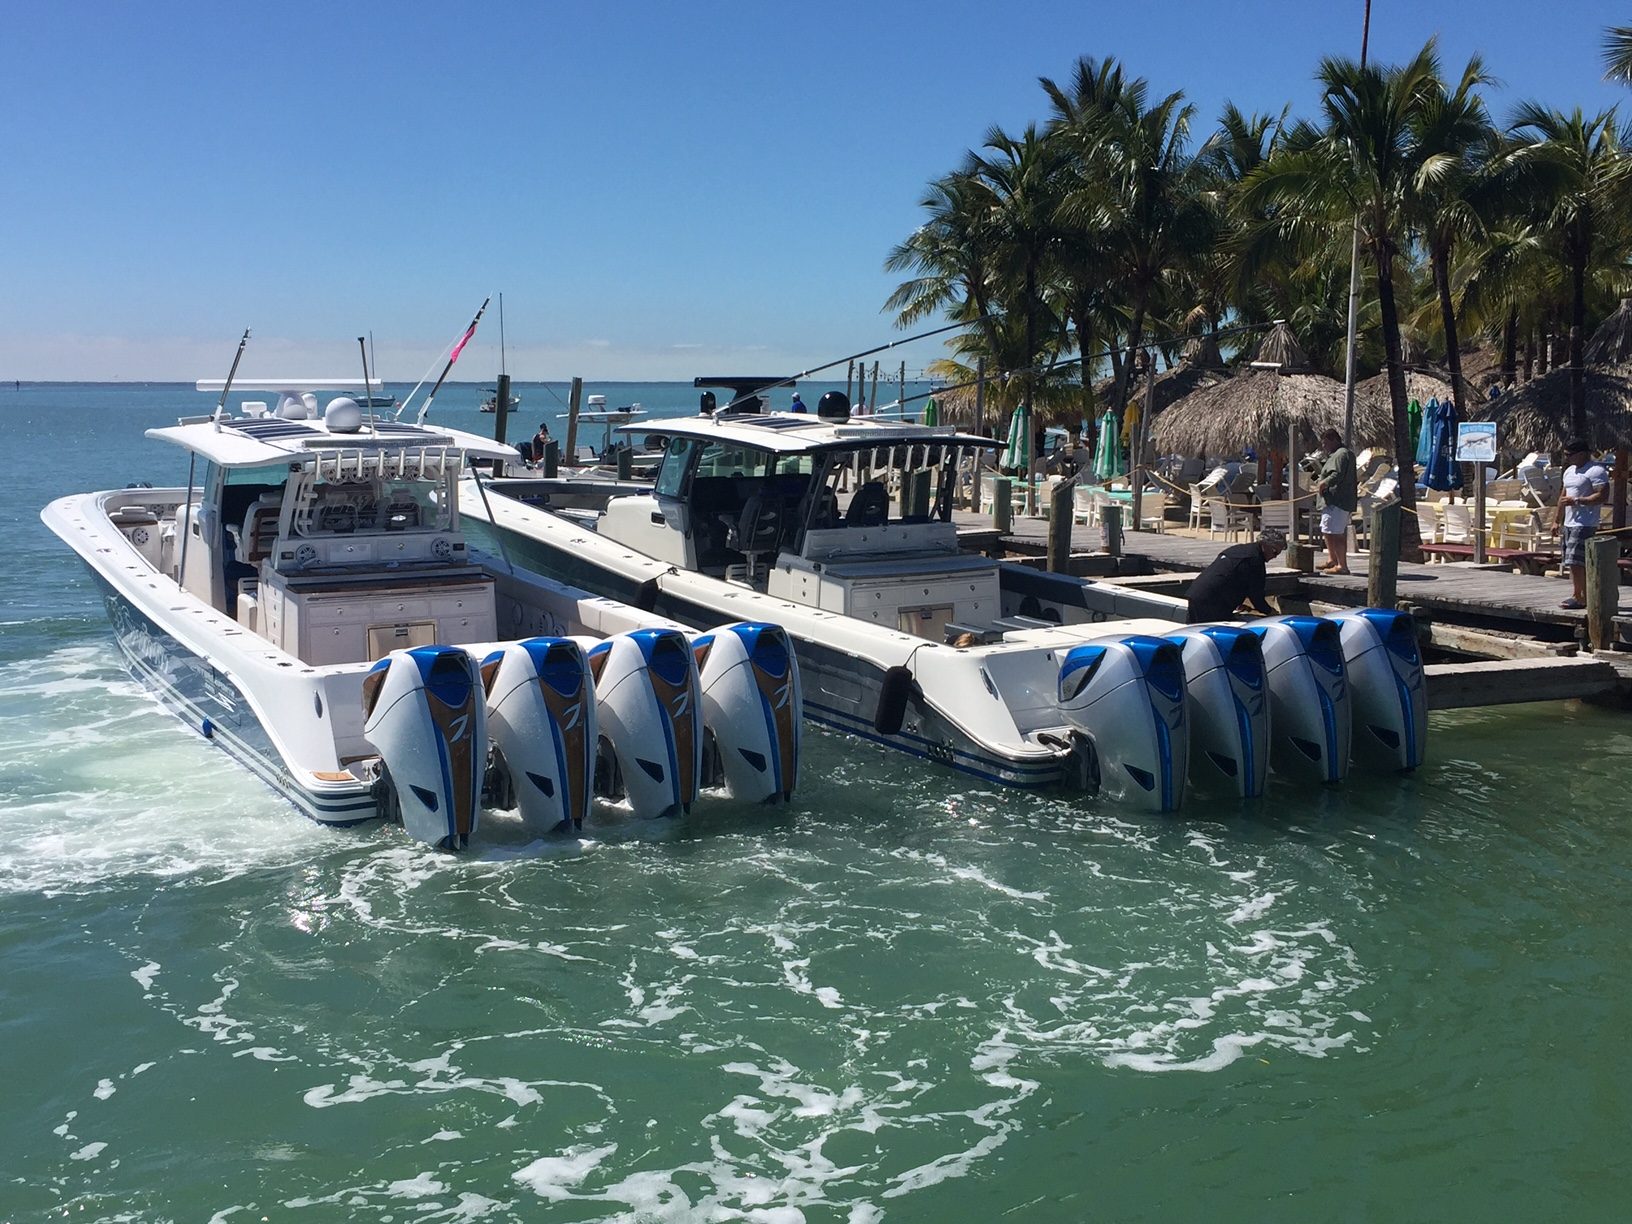 Fpc s miami boat show poker run is four days of 100 powerboating fun powerboat nation - Miami boat show ...